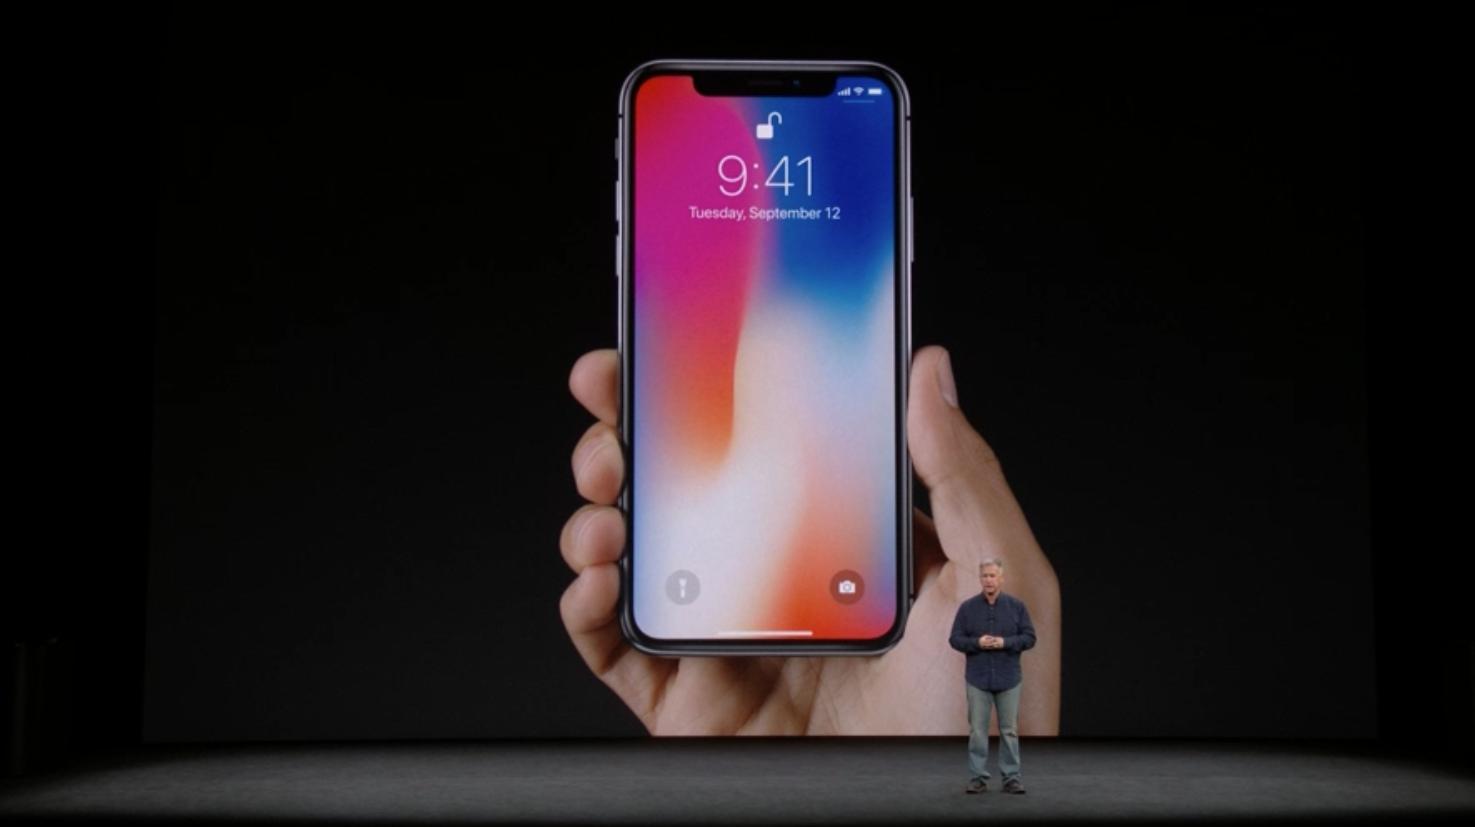 Above Apple's iPhone X